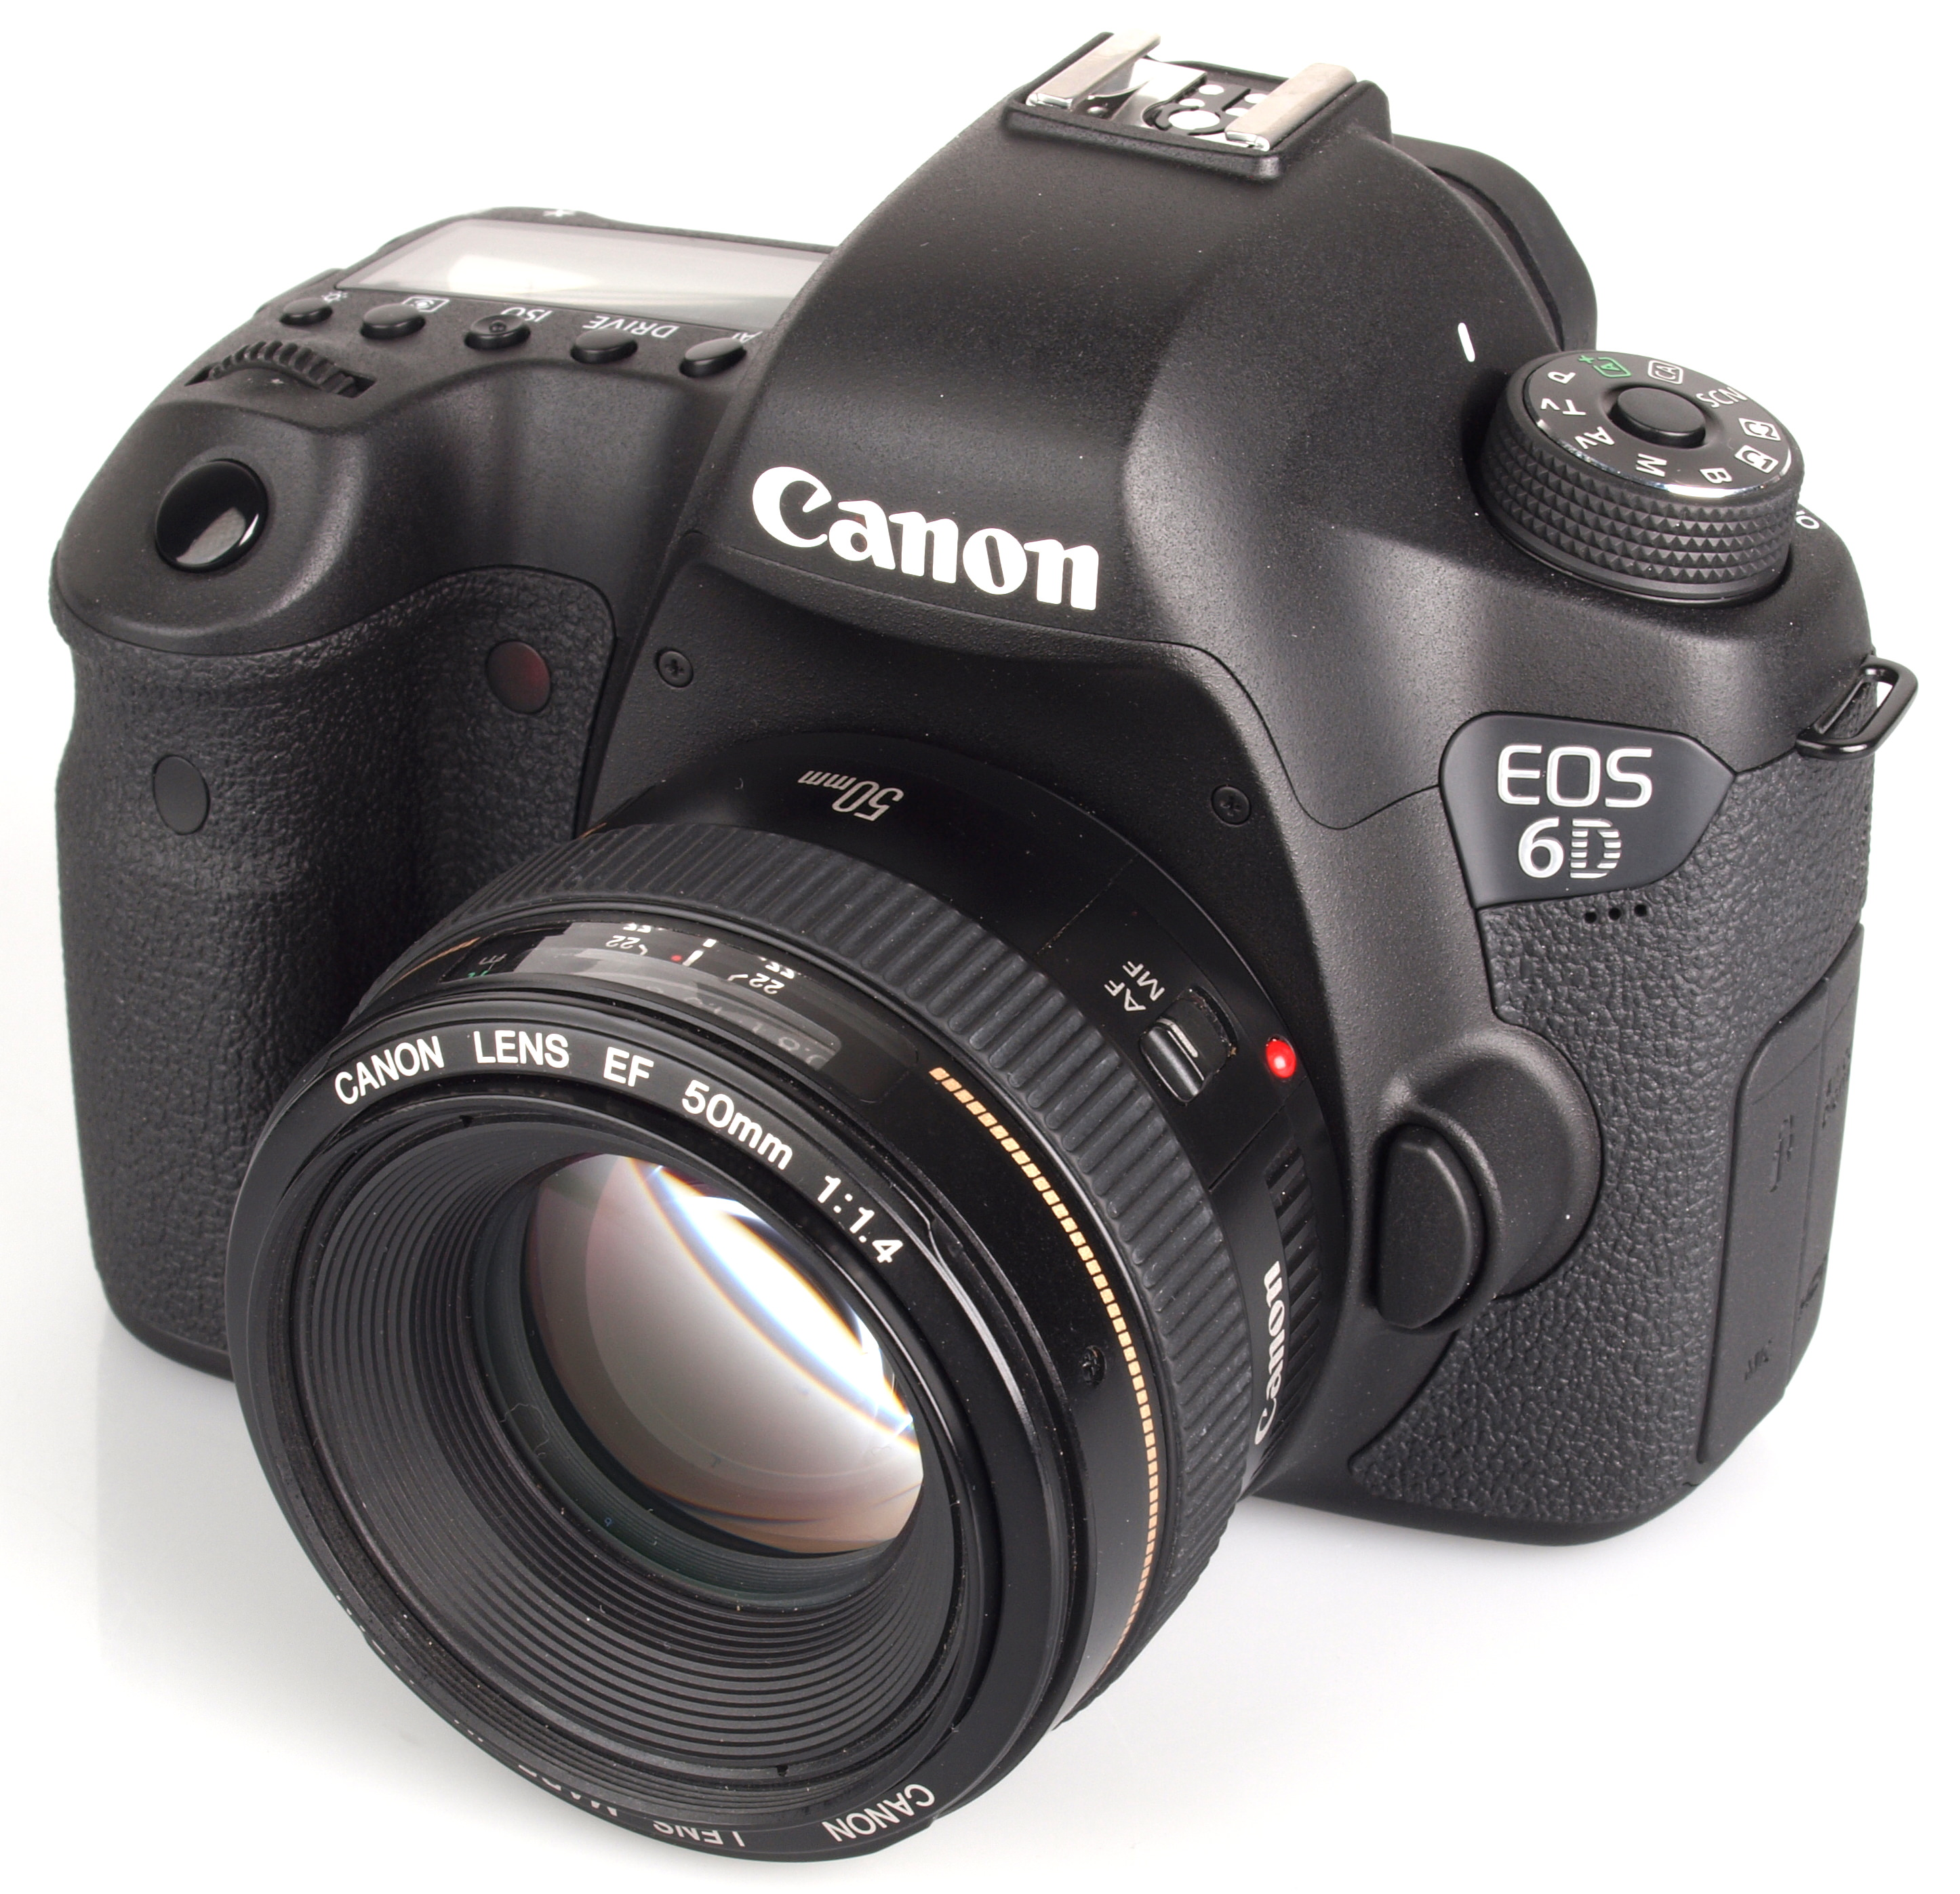 Pictures Taken with Canon EOS 6D DSLR